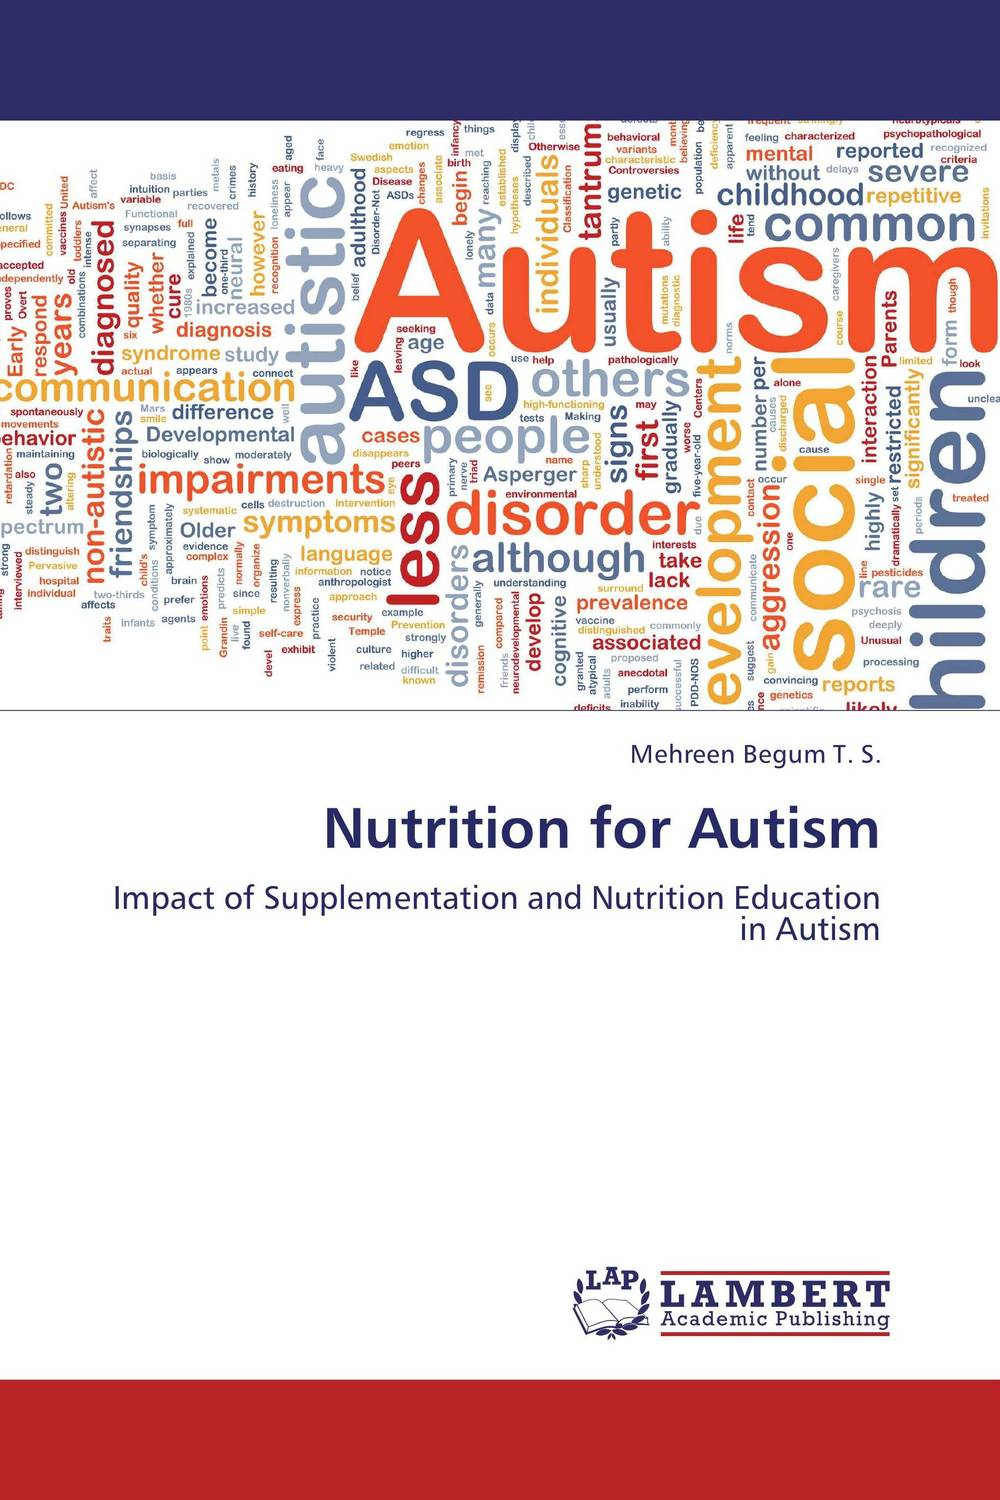 Nutrition for Autism nutrition status and food consumption pattern of children with cancer